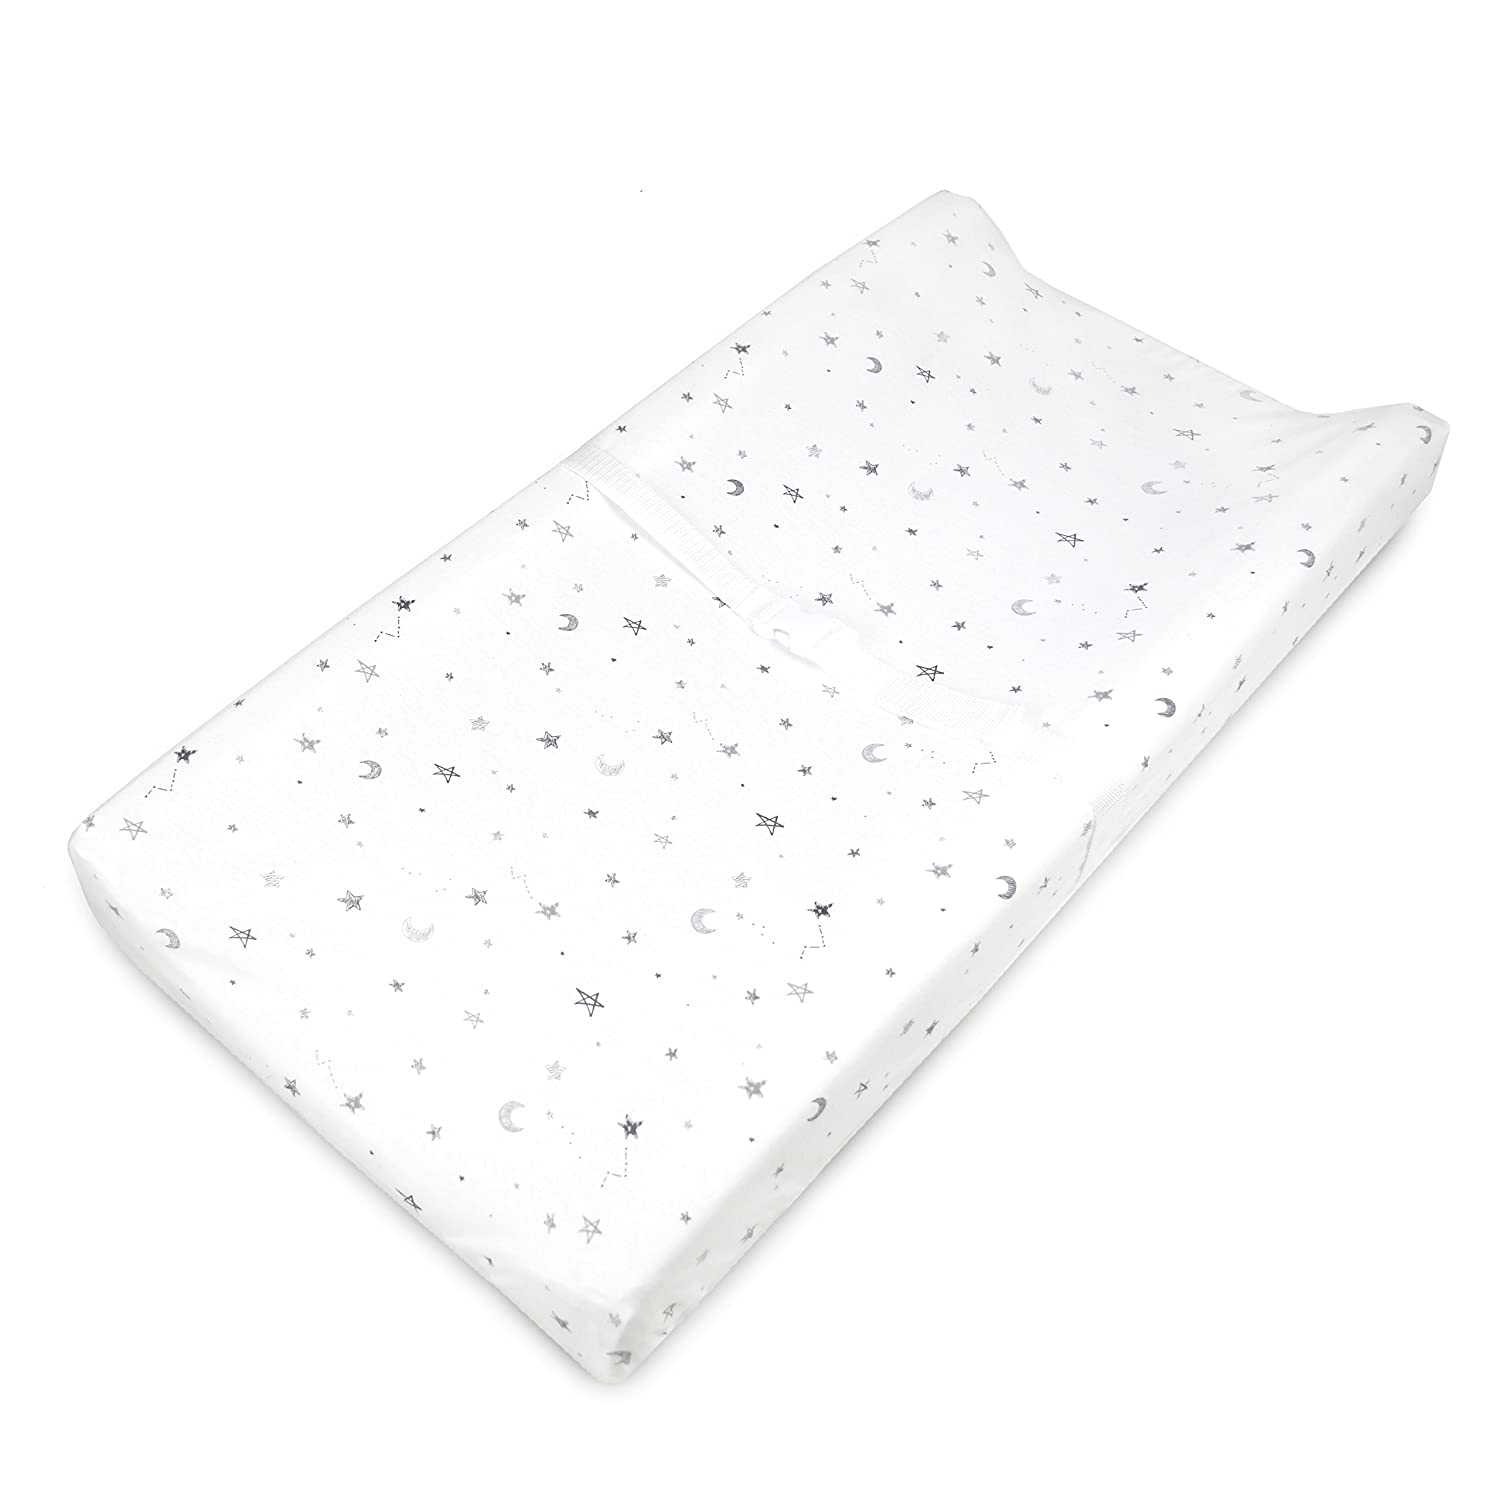 American Baby Company Printed 100% Natural Cotton Jersey Knit Fitted Contoured Changing Table Pad Cover, auch Works mit Travel Lite Mattress, Grey Stars und Moon, Soft Breathable, für Boys und Girls